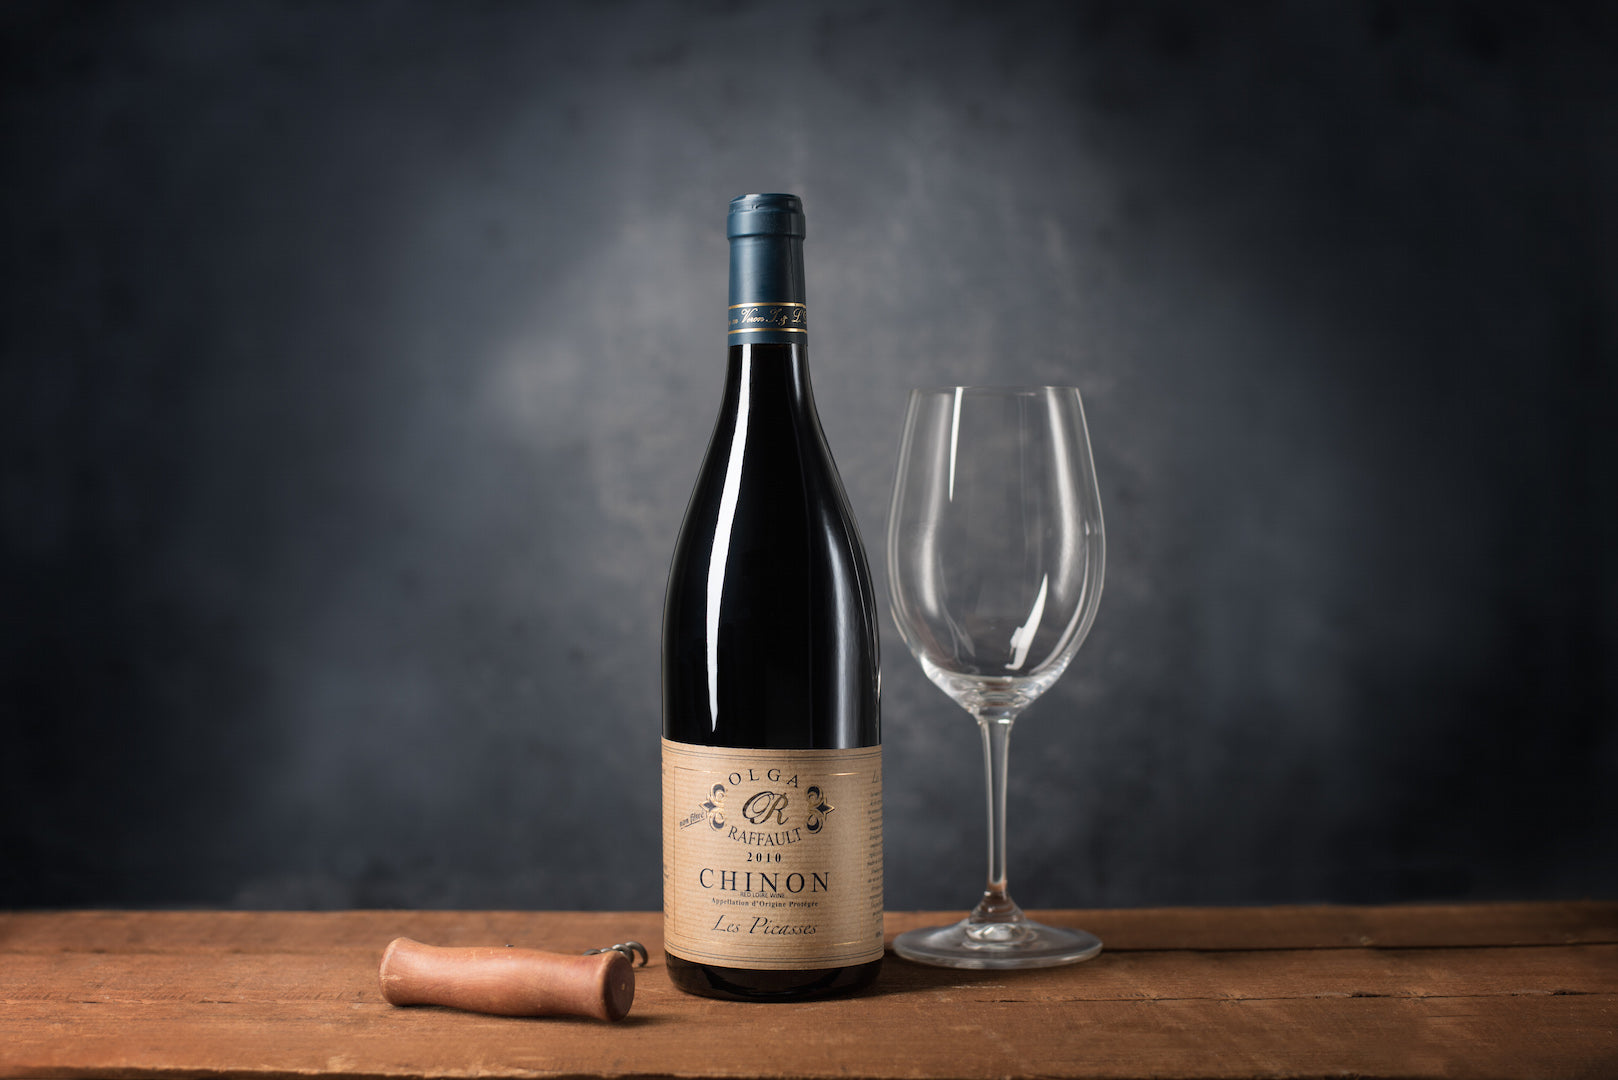 Domaine Olga Raffault Chinon 'Les Picasses' 2013 - Cellar Direct